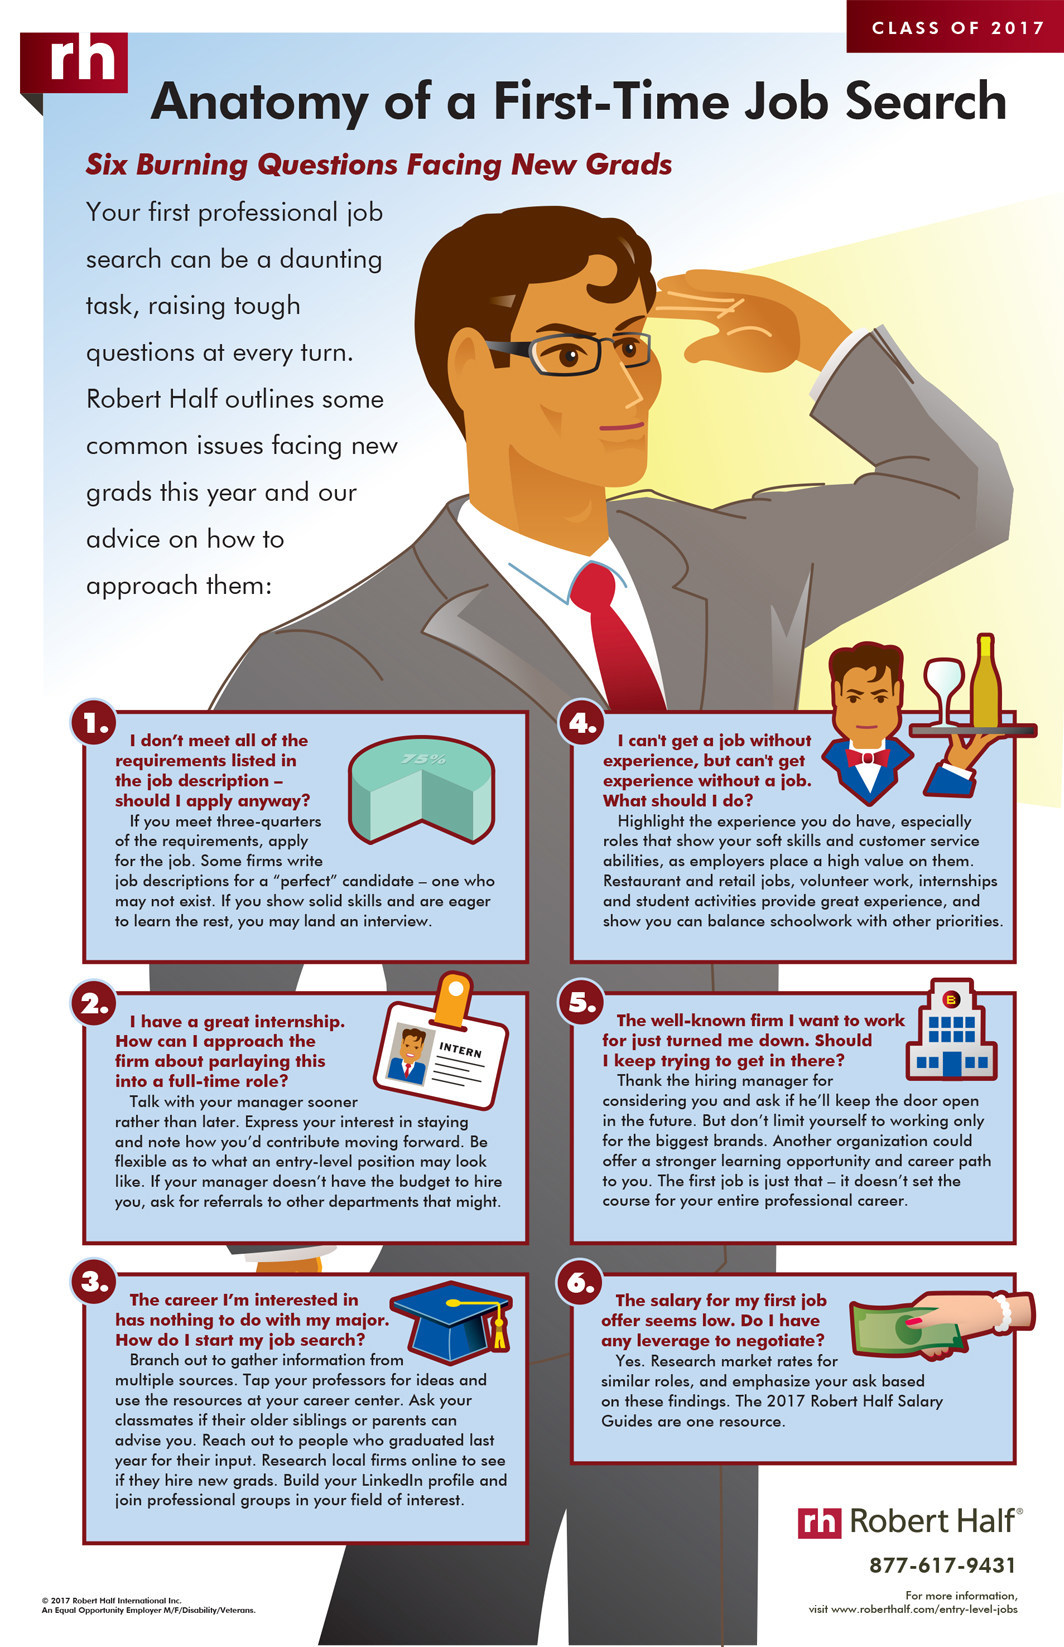 Anatomy of a First-Time Job Search